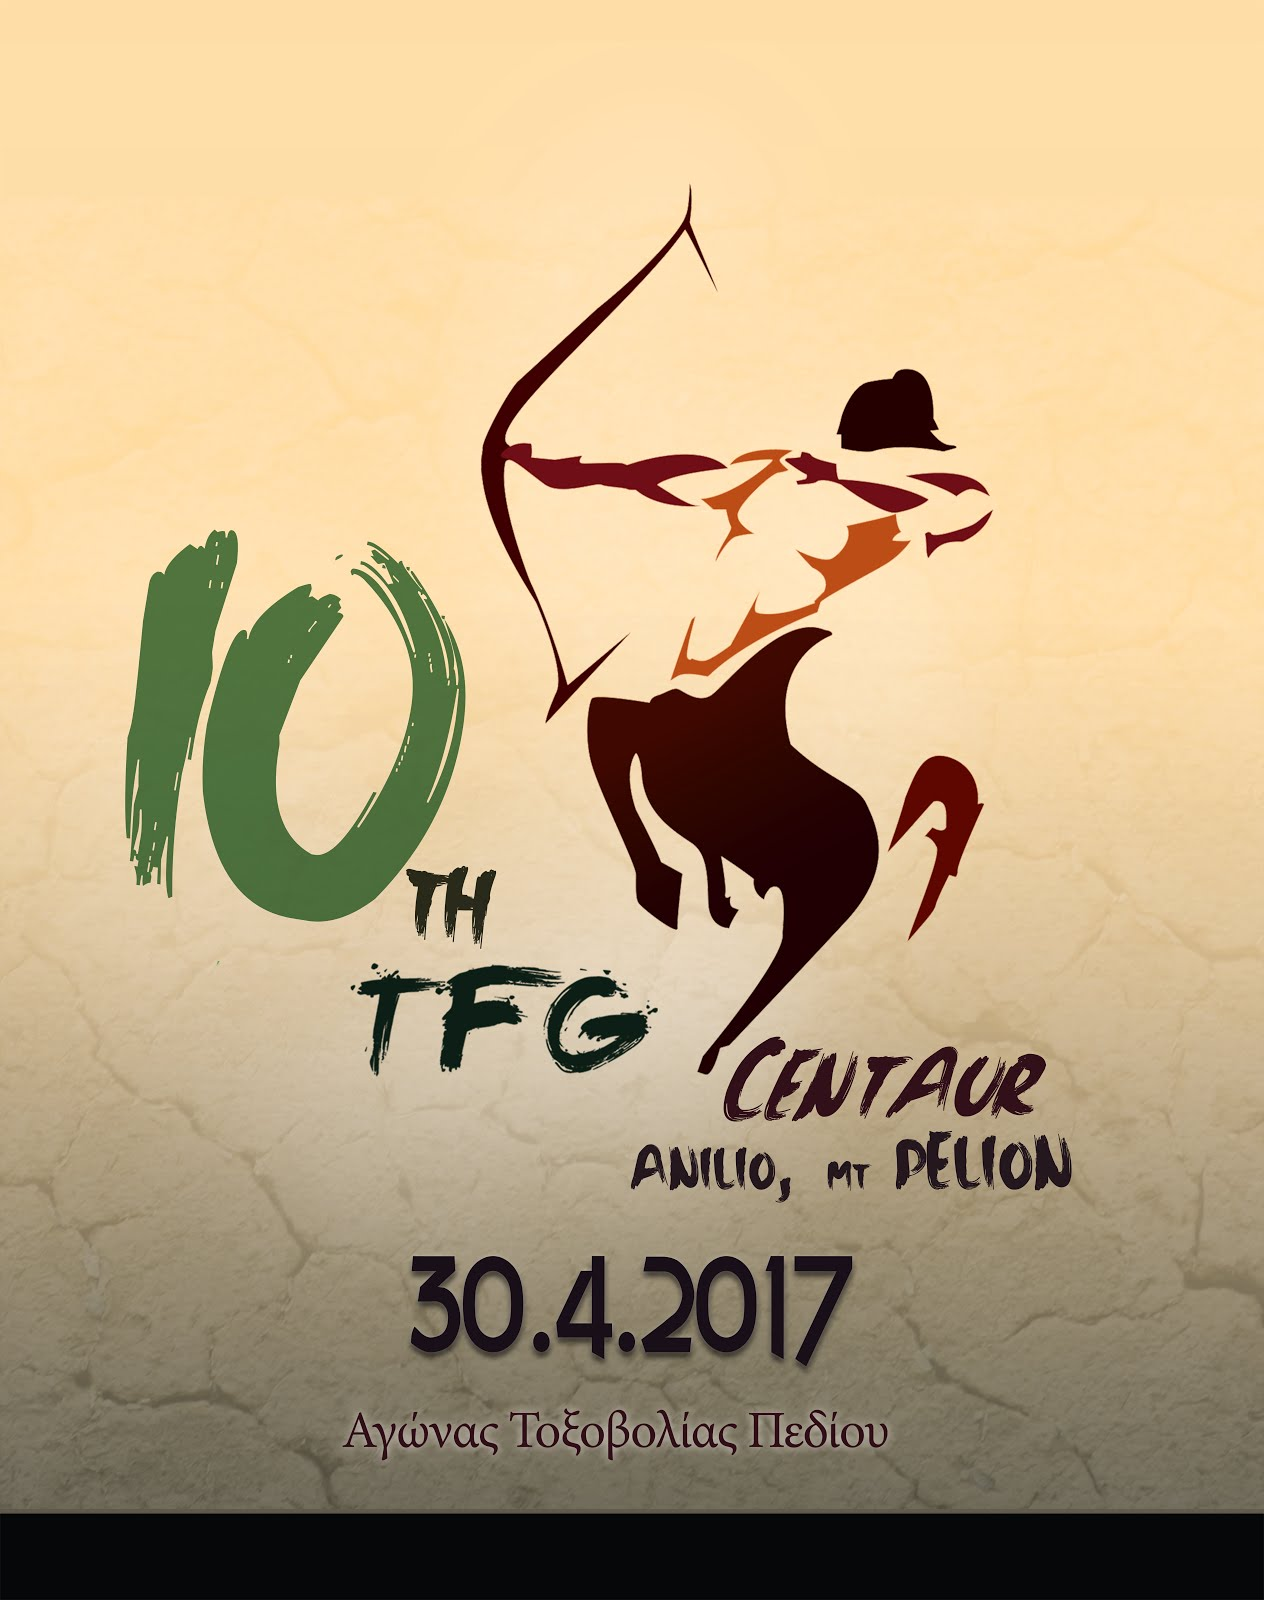 10th TFG! Anilio, mt Pelion.